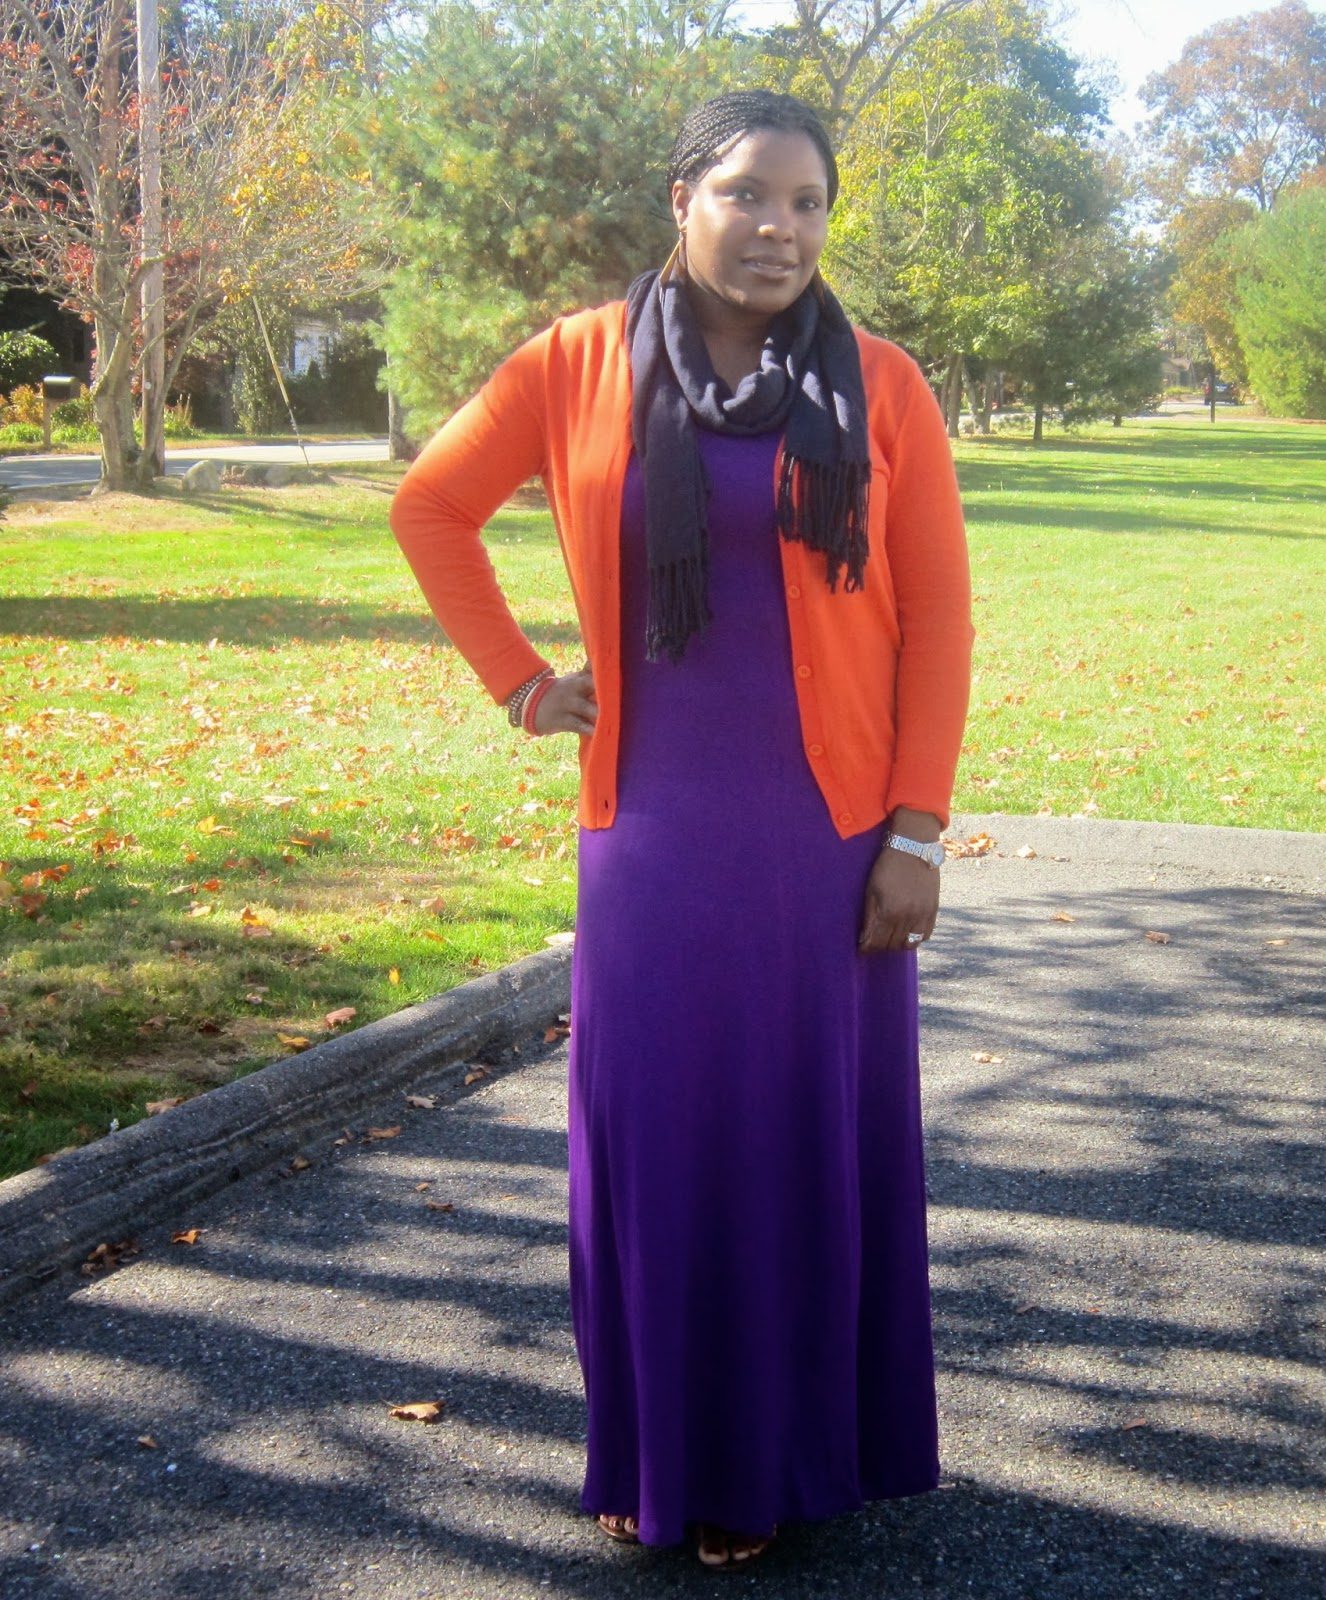 Orange Cardigan, Purple maxi dress, Old navy